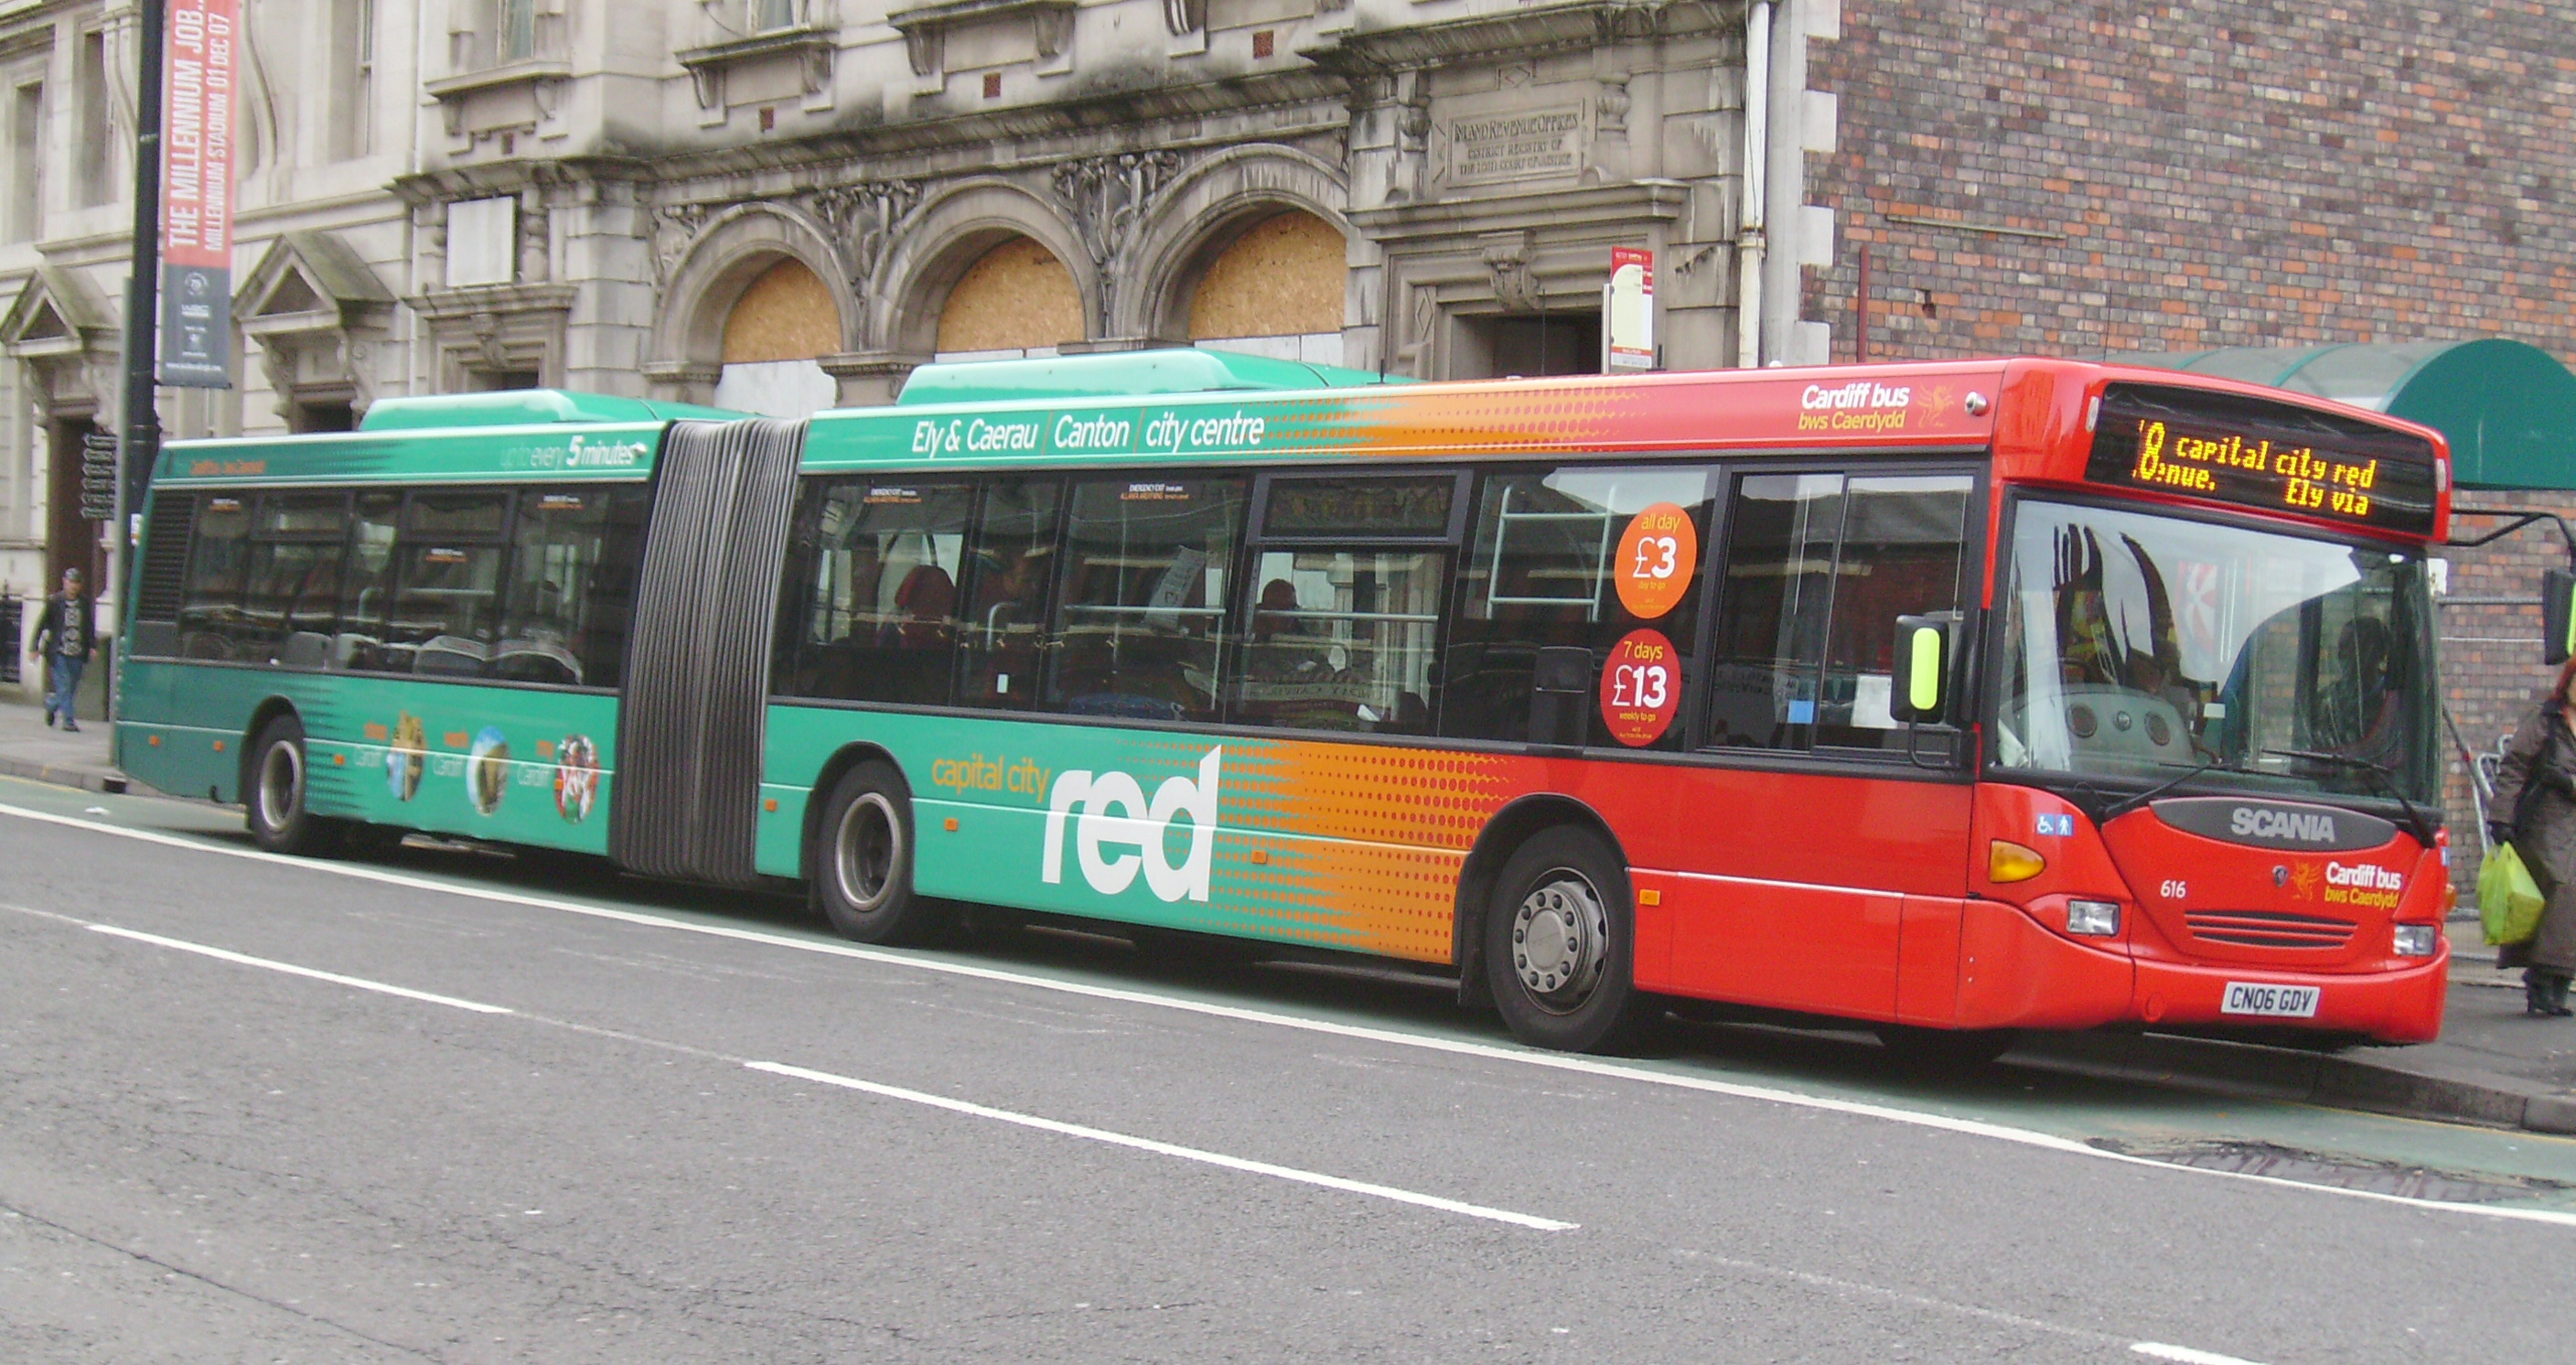 Cardiff bus No 17 and 18 buses